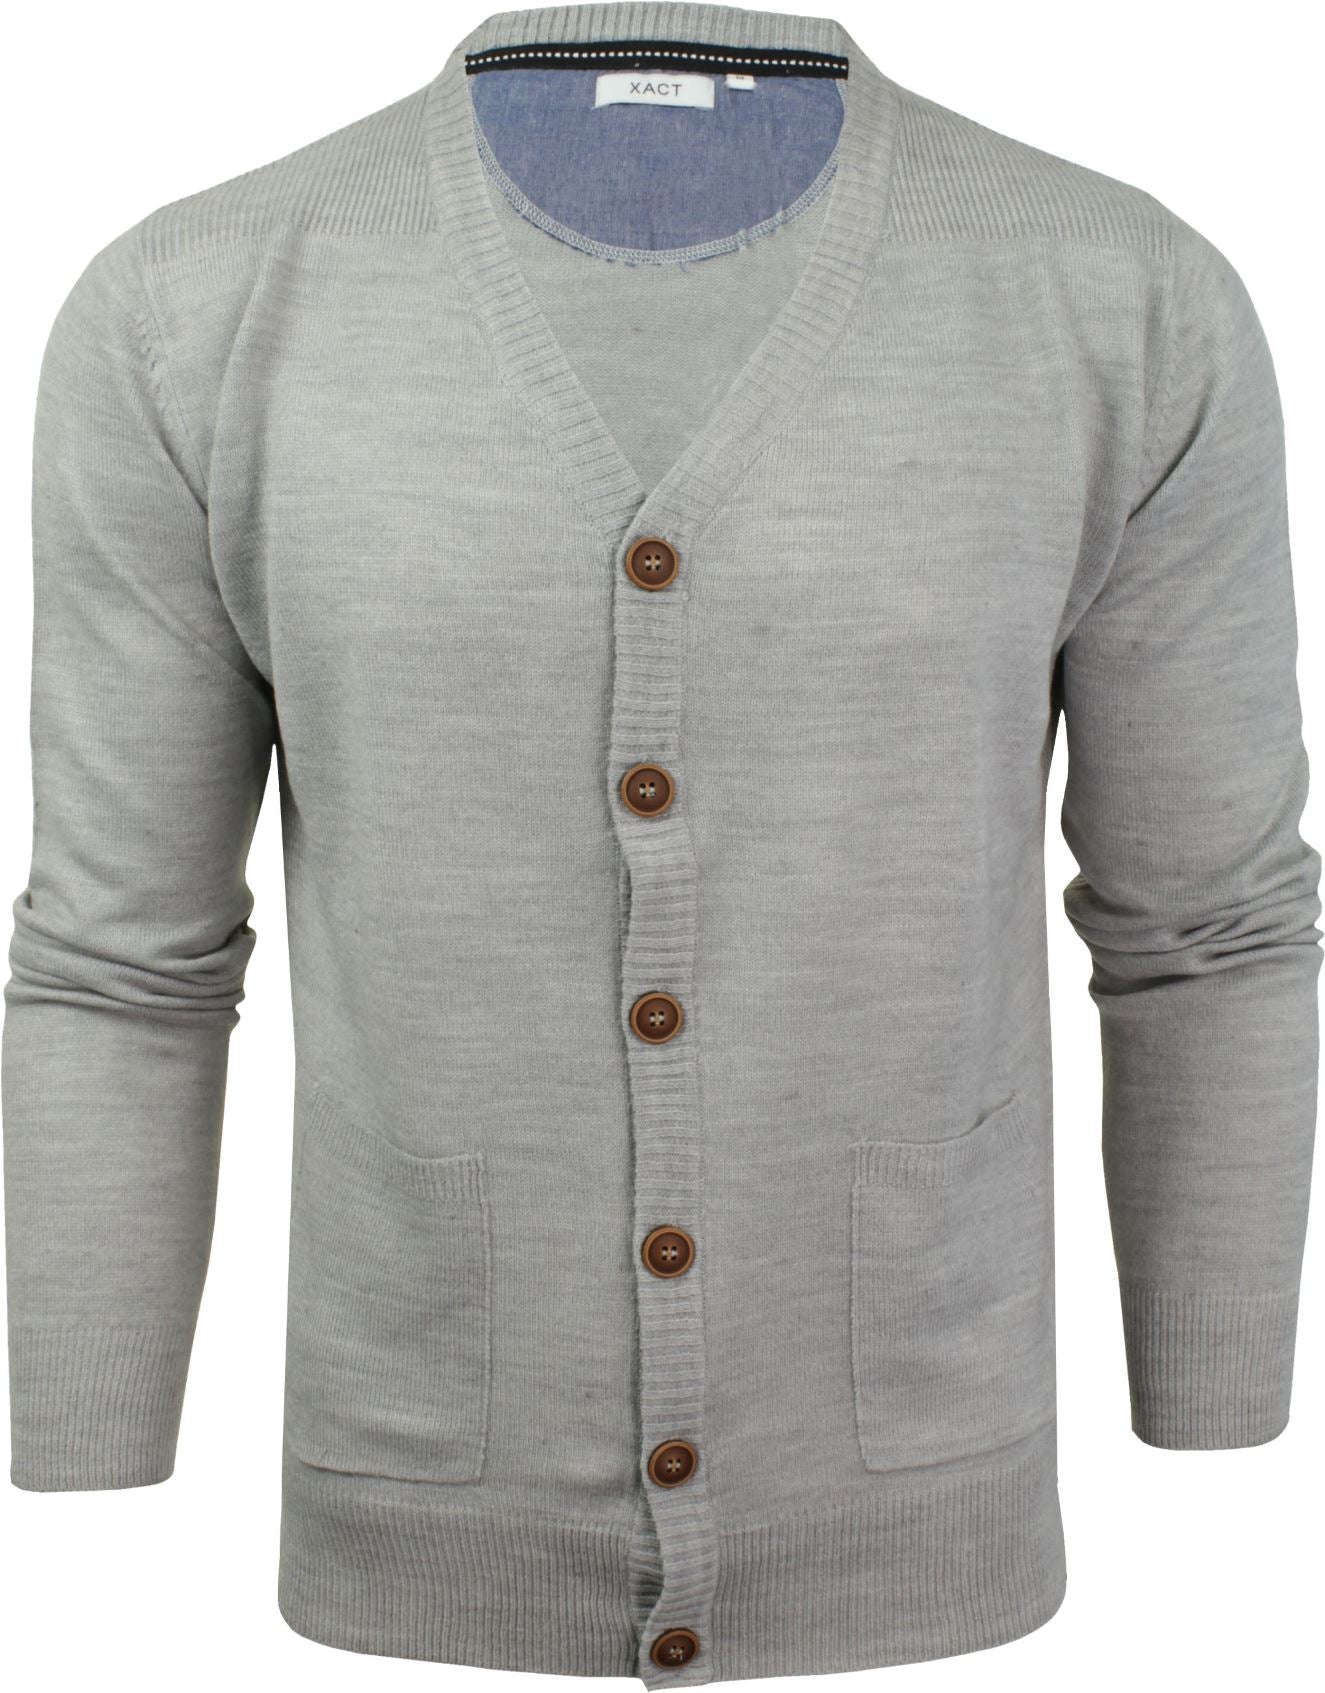 Mens Cardigan Button Front Fashion Jumper by Xact-Main Image